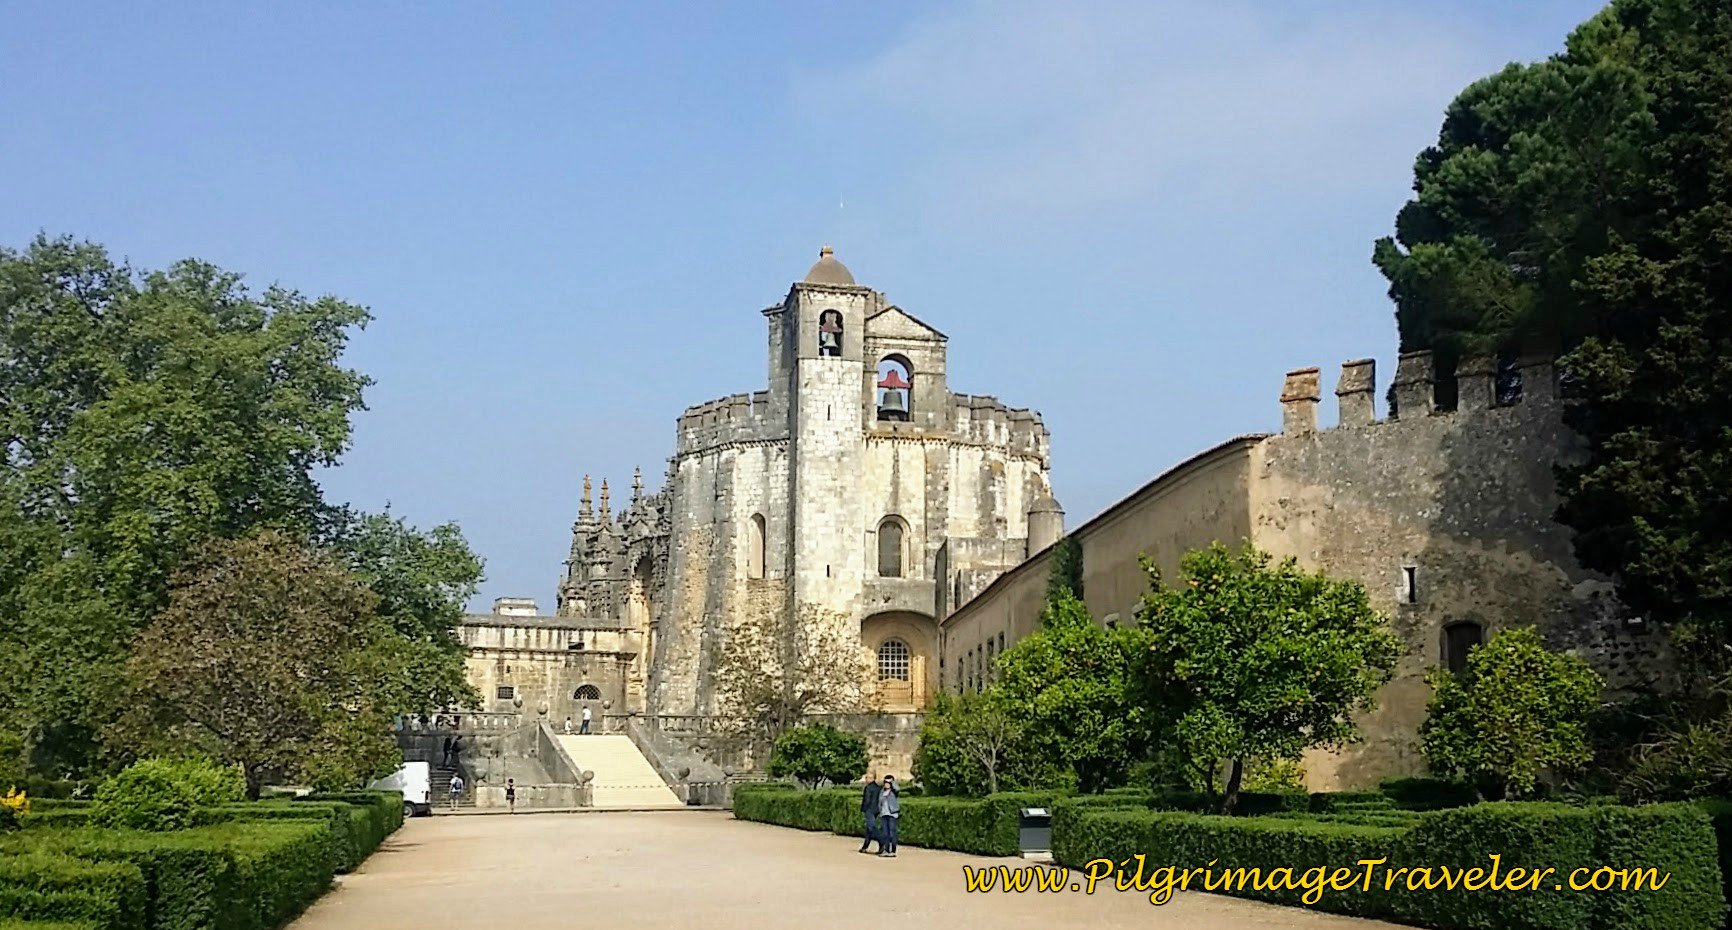 The Stunning Knight's Templar Church inside the Fortress at Tomar, Portugal